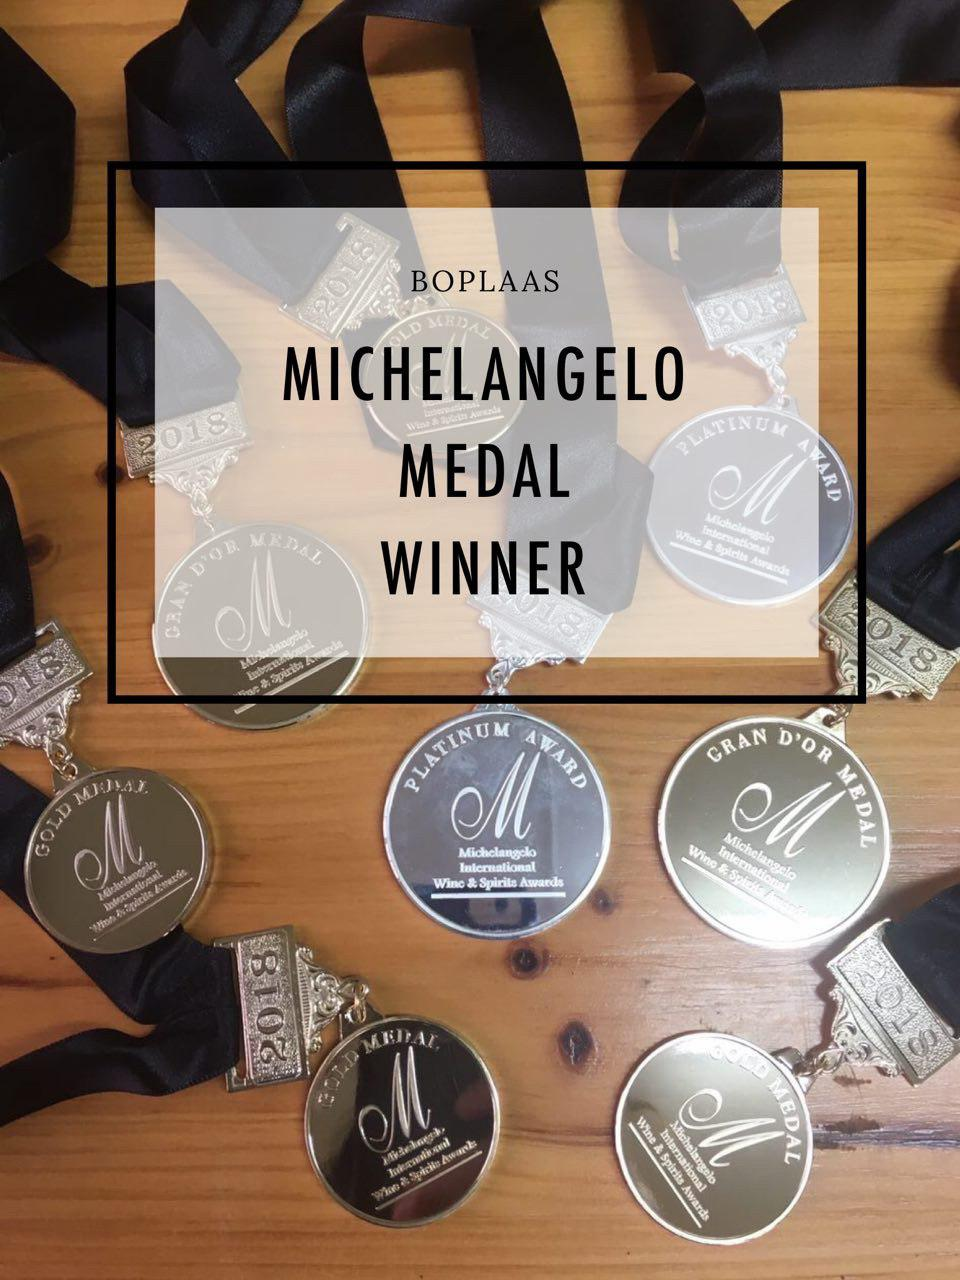 Boplaas named among most successful award-winners at Michelangelo 2018